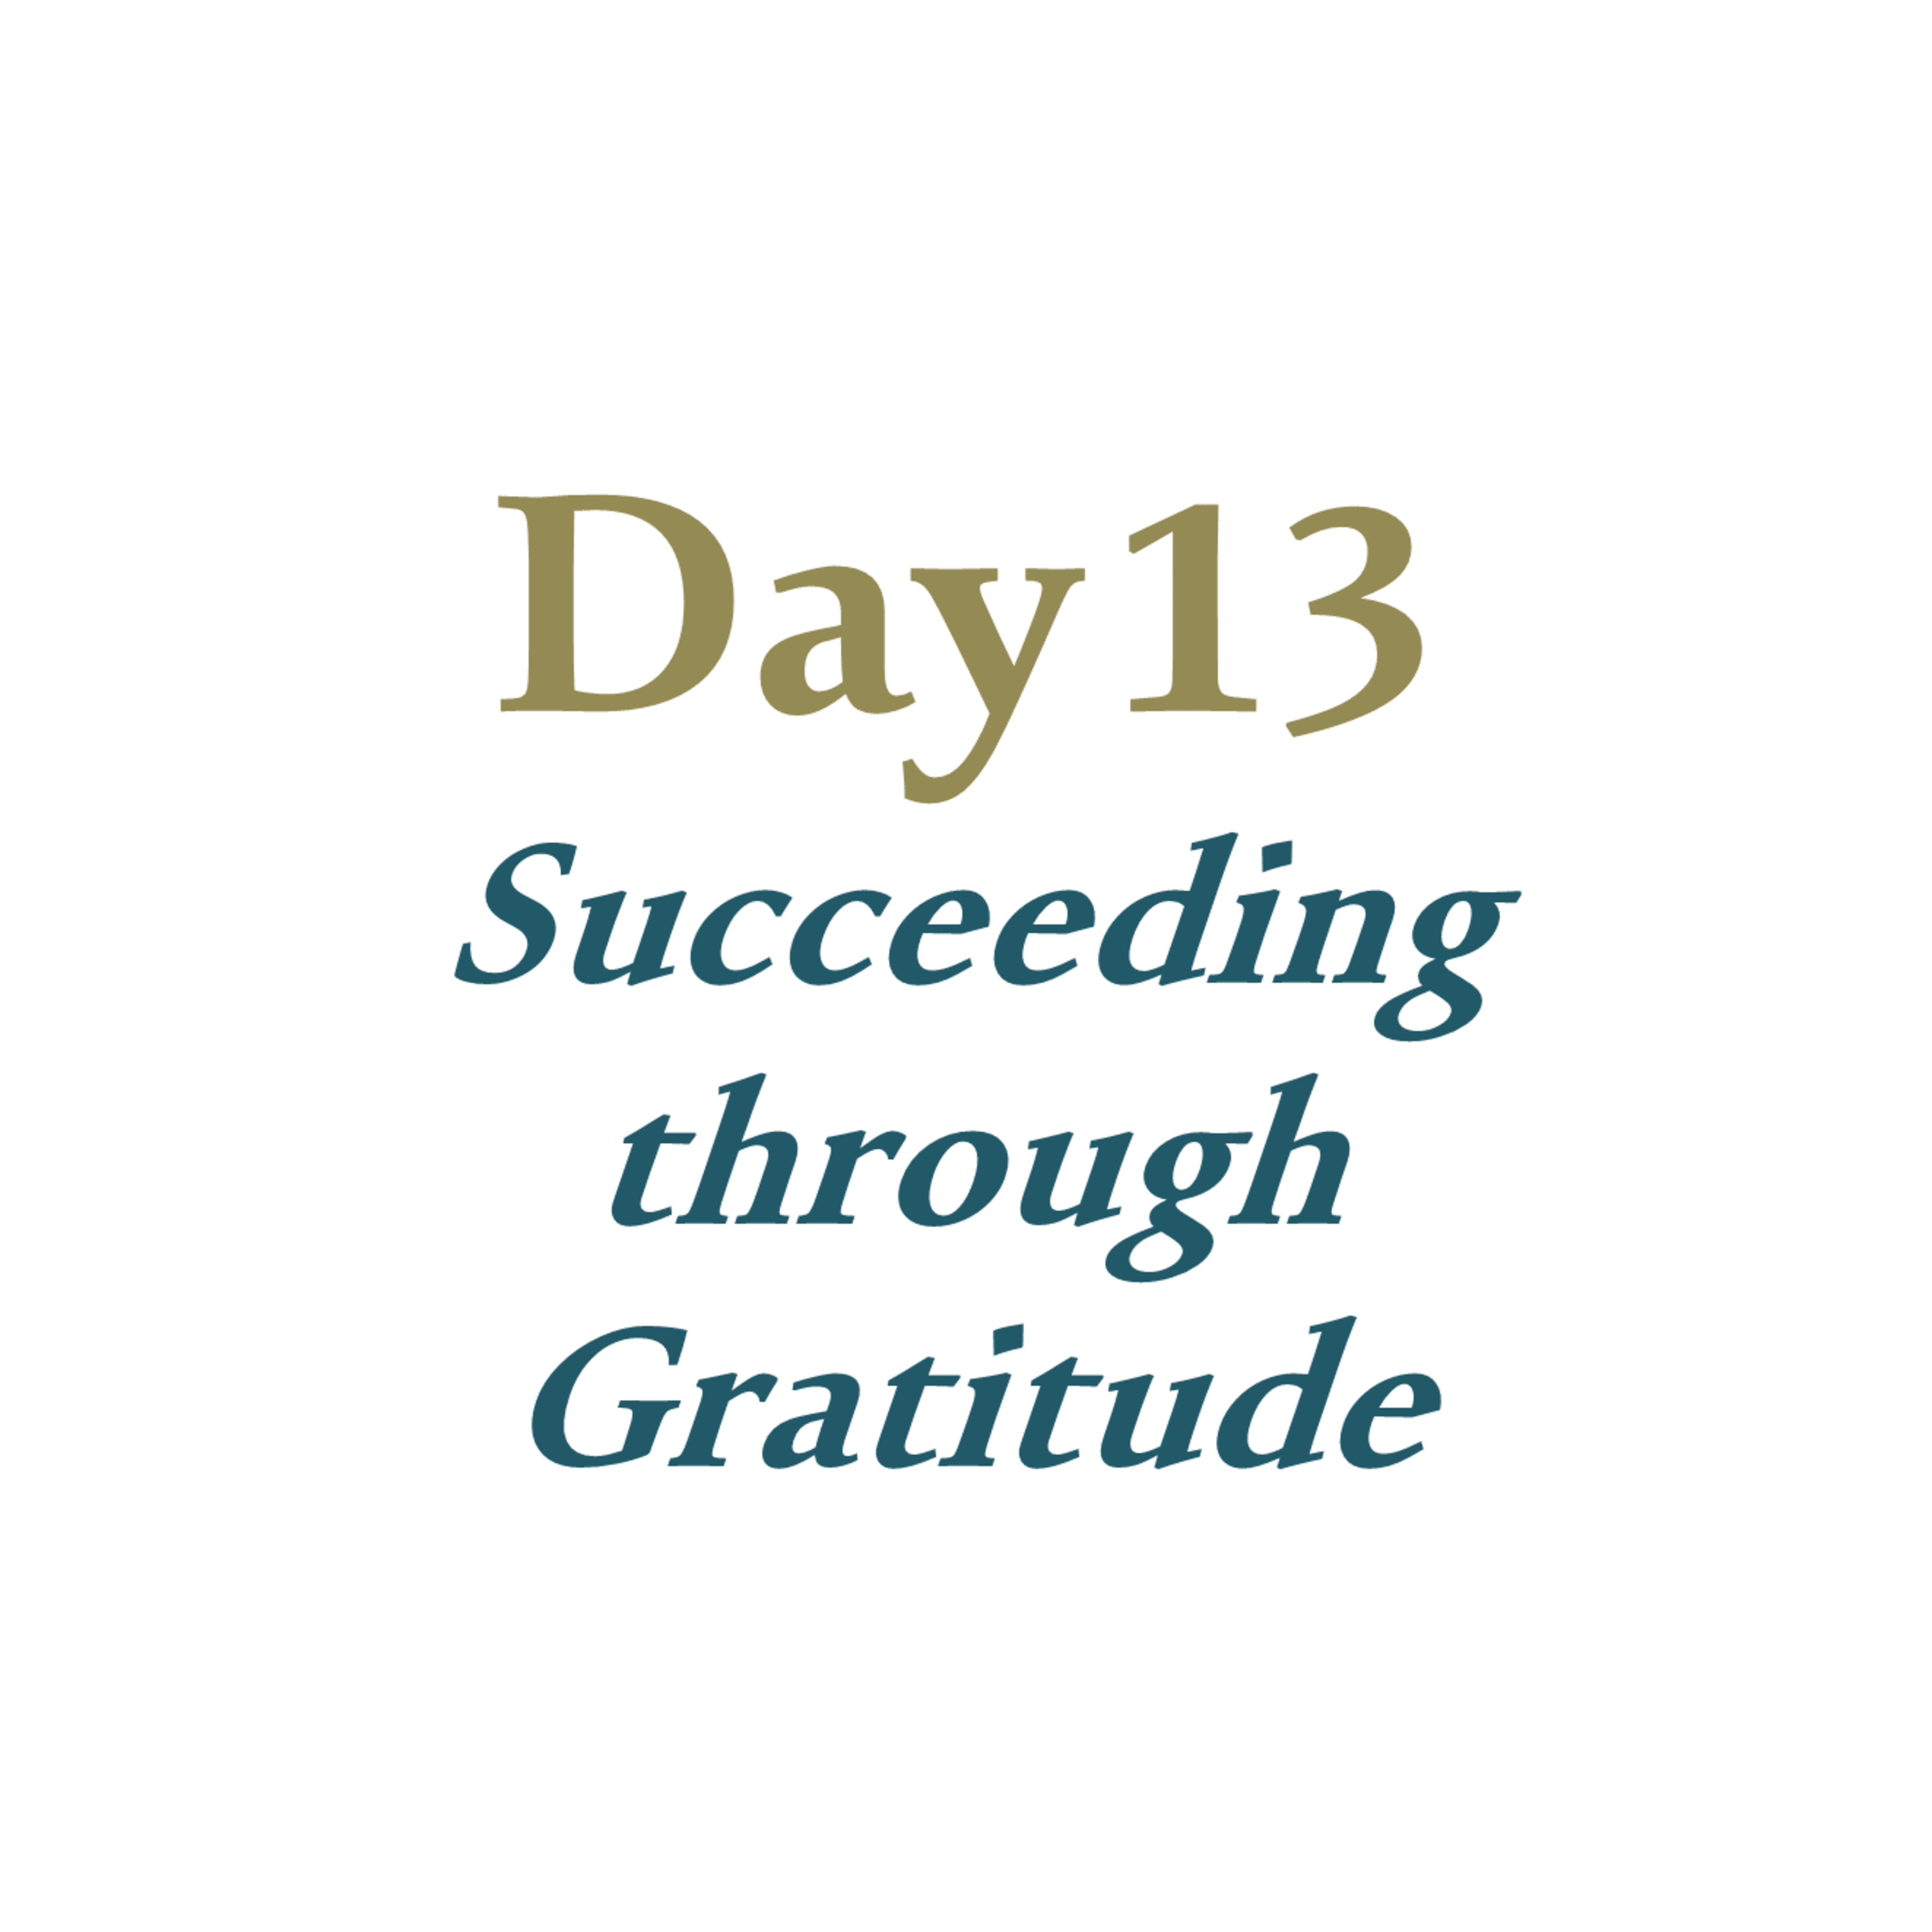 Day 13 - Succeeding through Gratitude